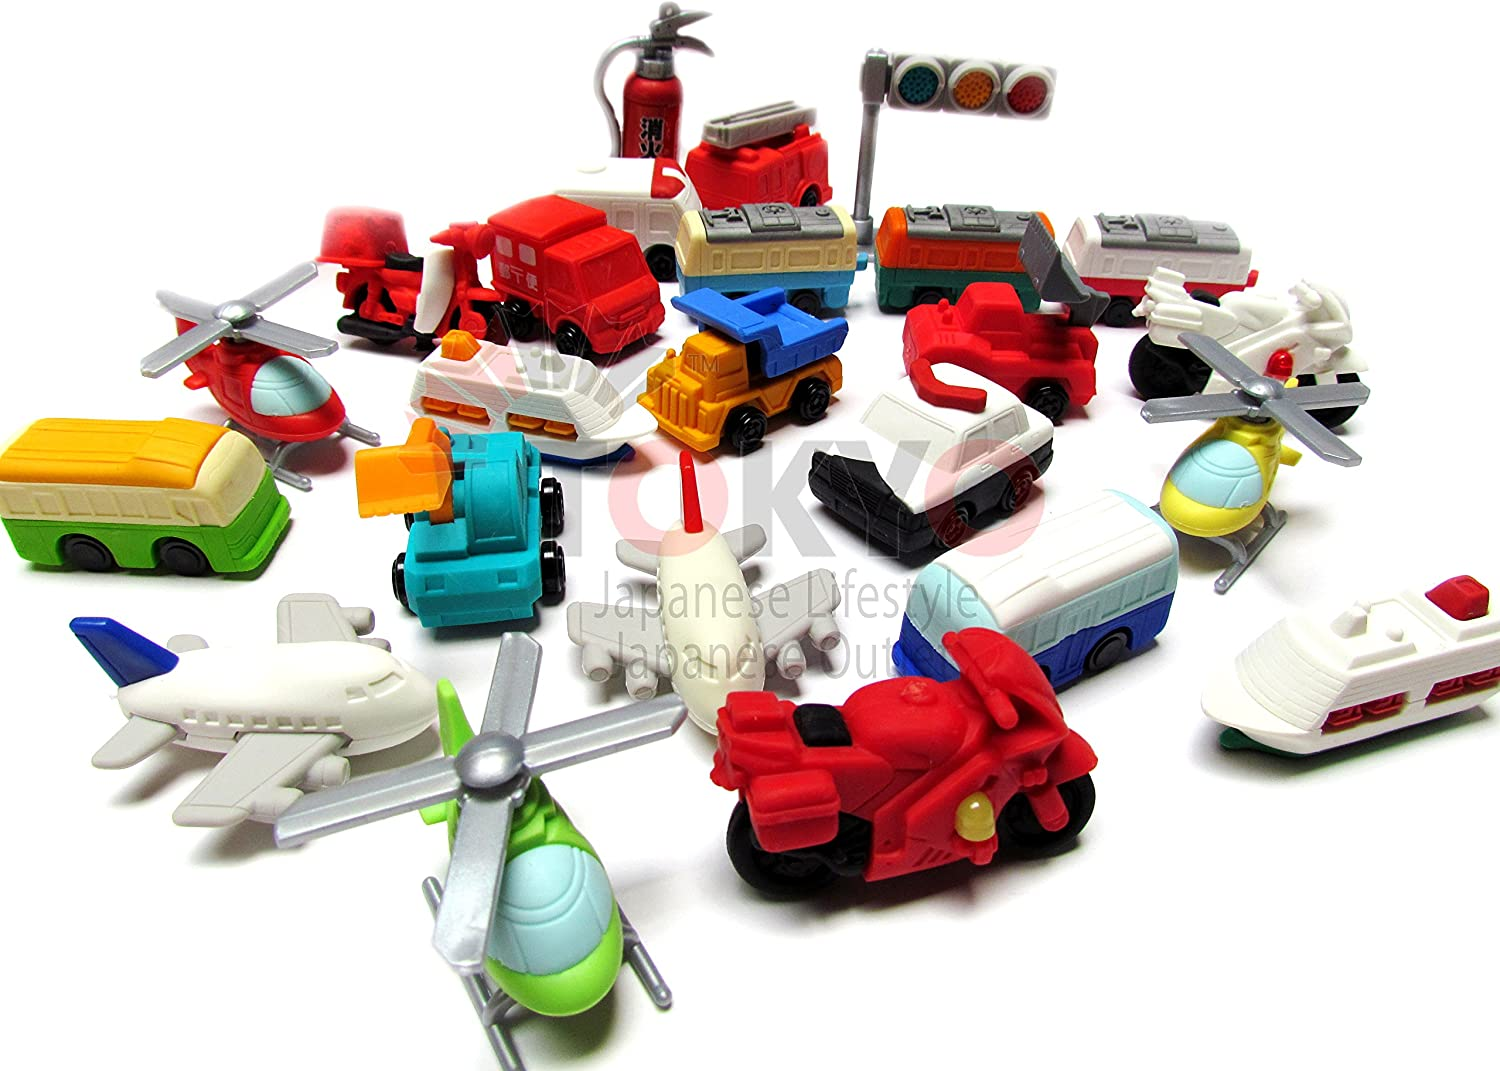 10 Assorted Iwako Eraser - Vehicle Collection (Erasers will be randomly selected from the image shown)